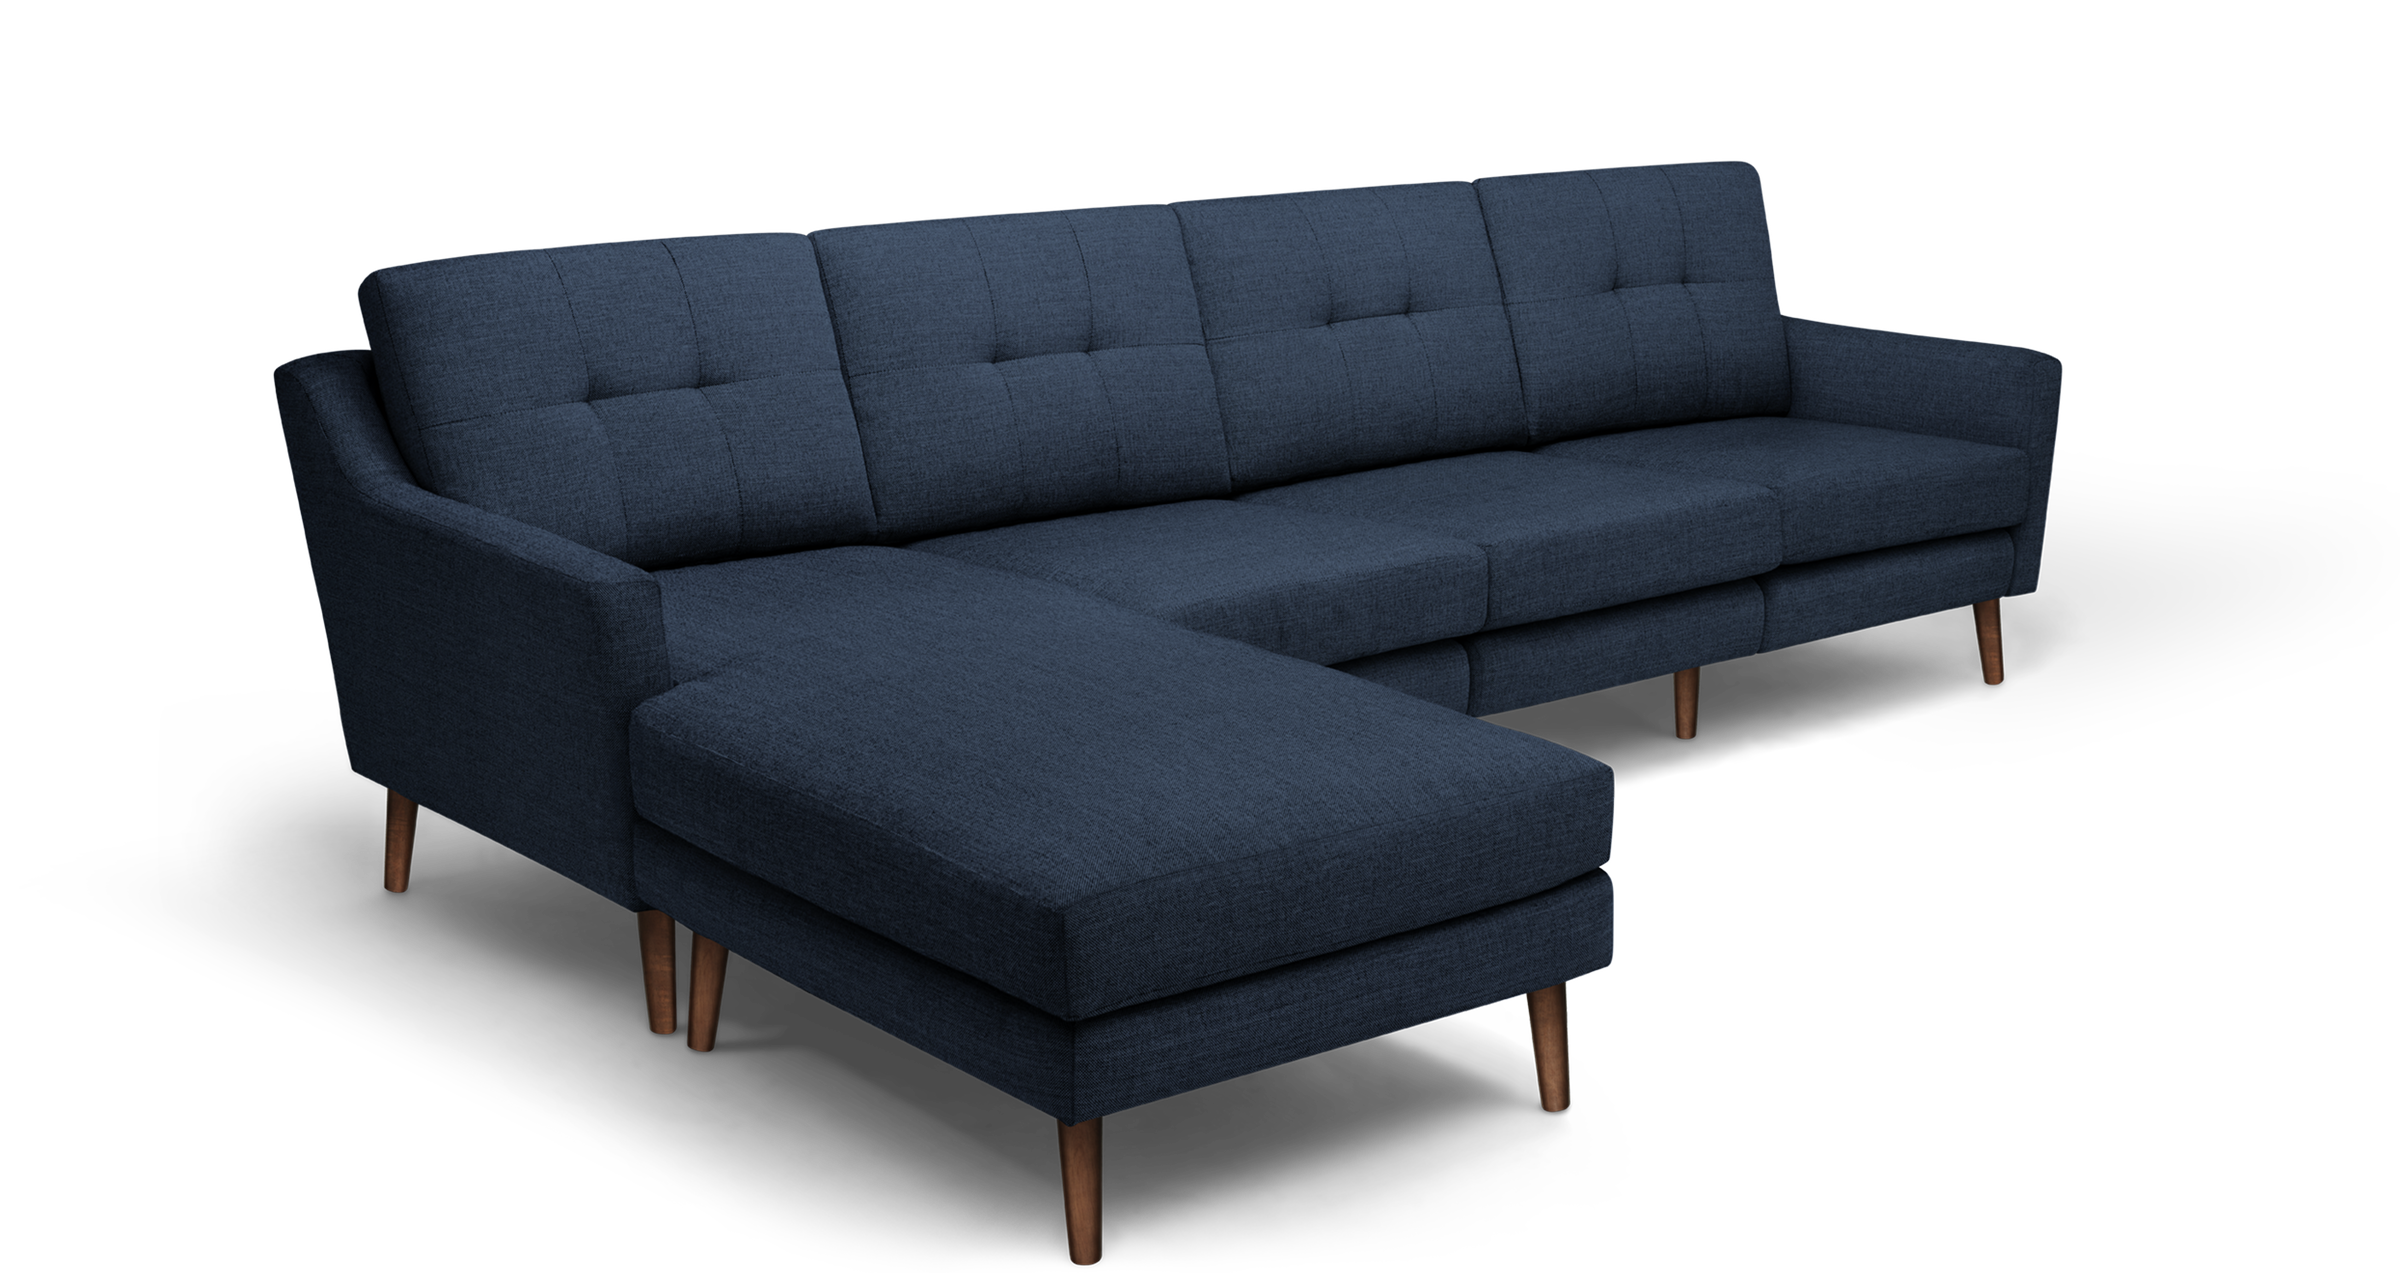 Amazing The King Sofa With Chaise Long Sectional Sofas Queensland Inzonedesignstudio Interior Chair Design Inzonedesignstudiocom